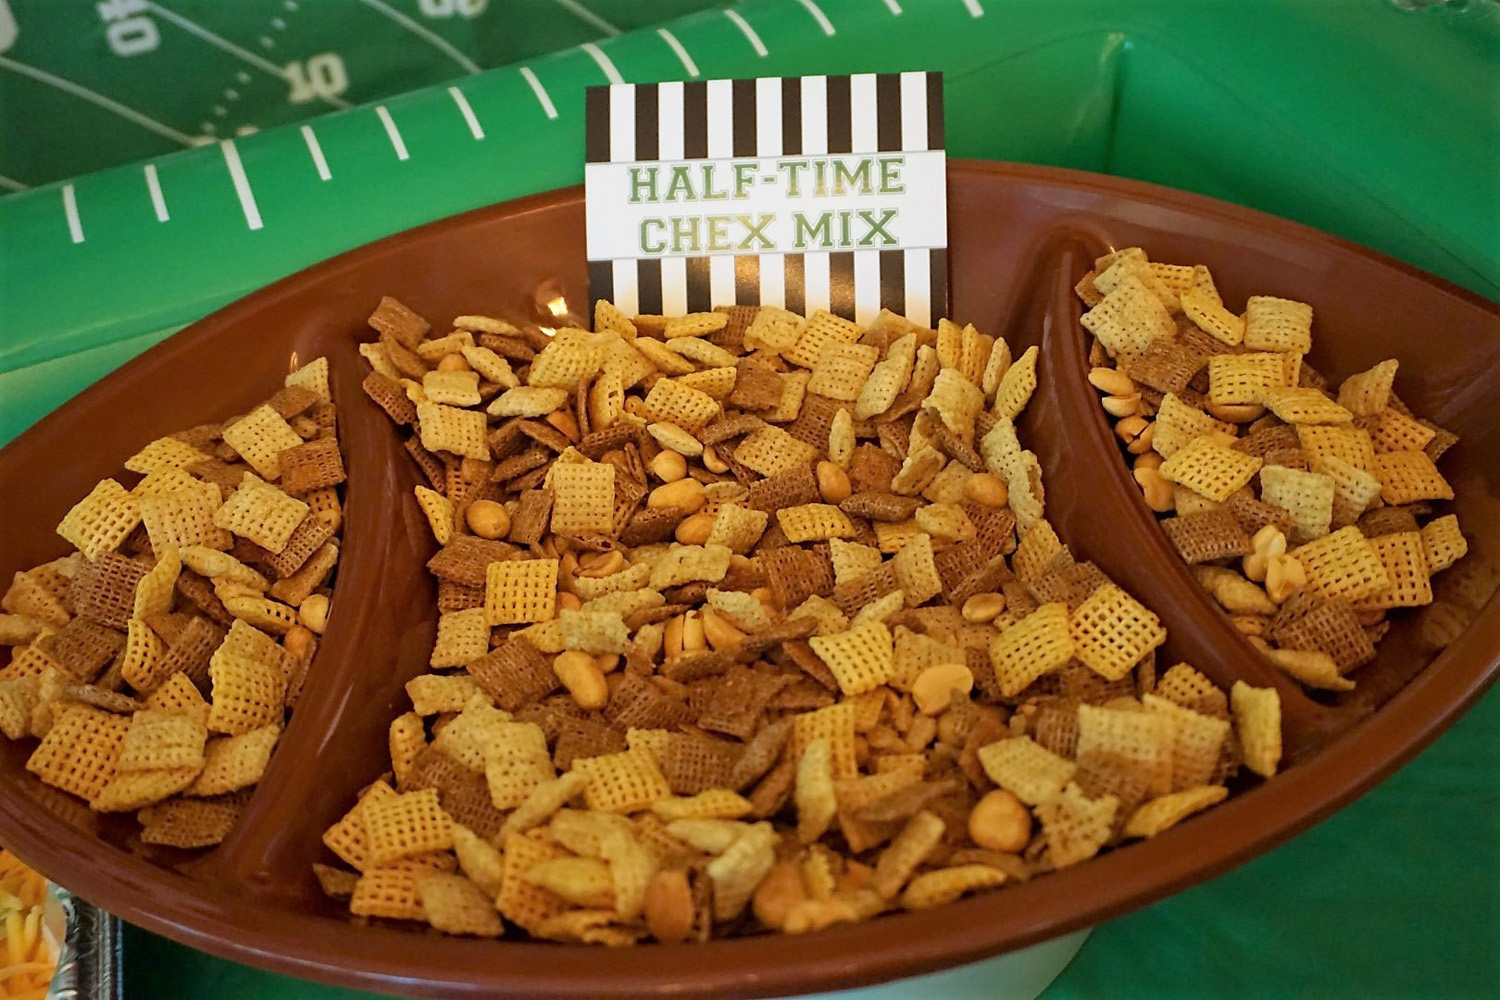 Chex mix in a football shaped bowl for football snacks.